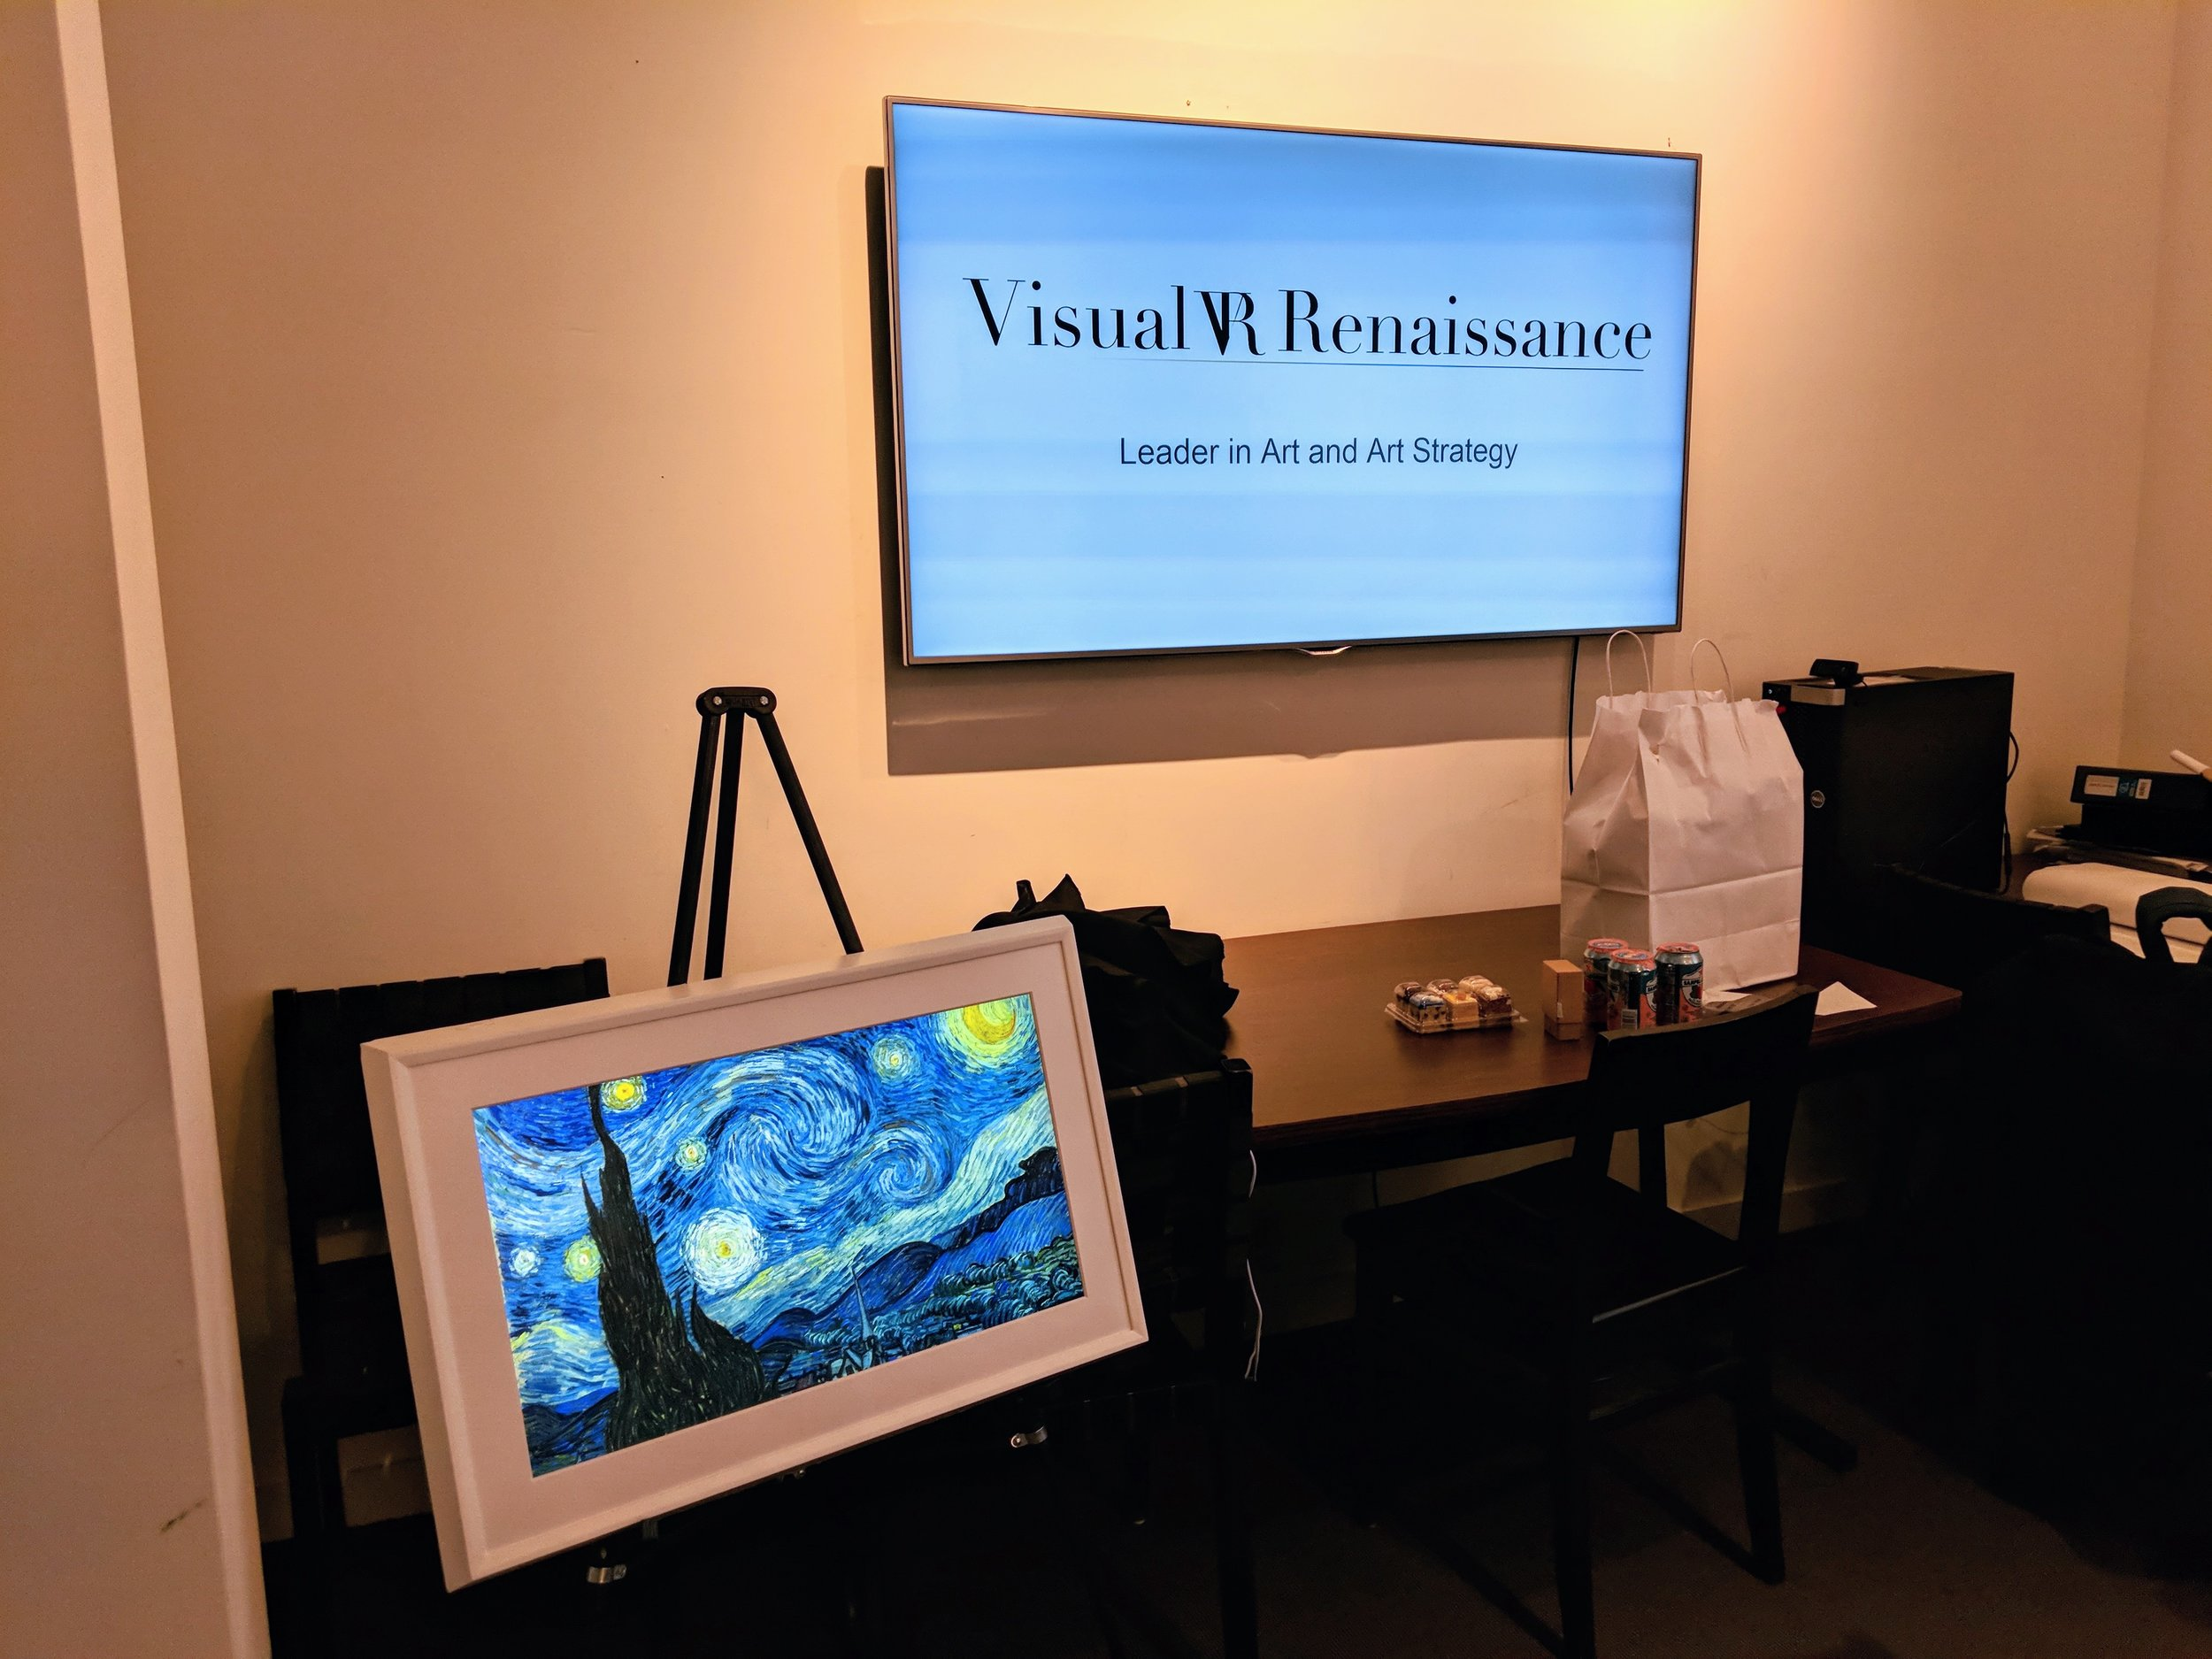 Schedule your company's presentation today! Lunch is included!